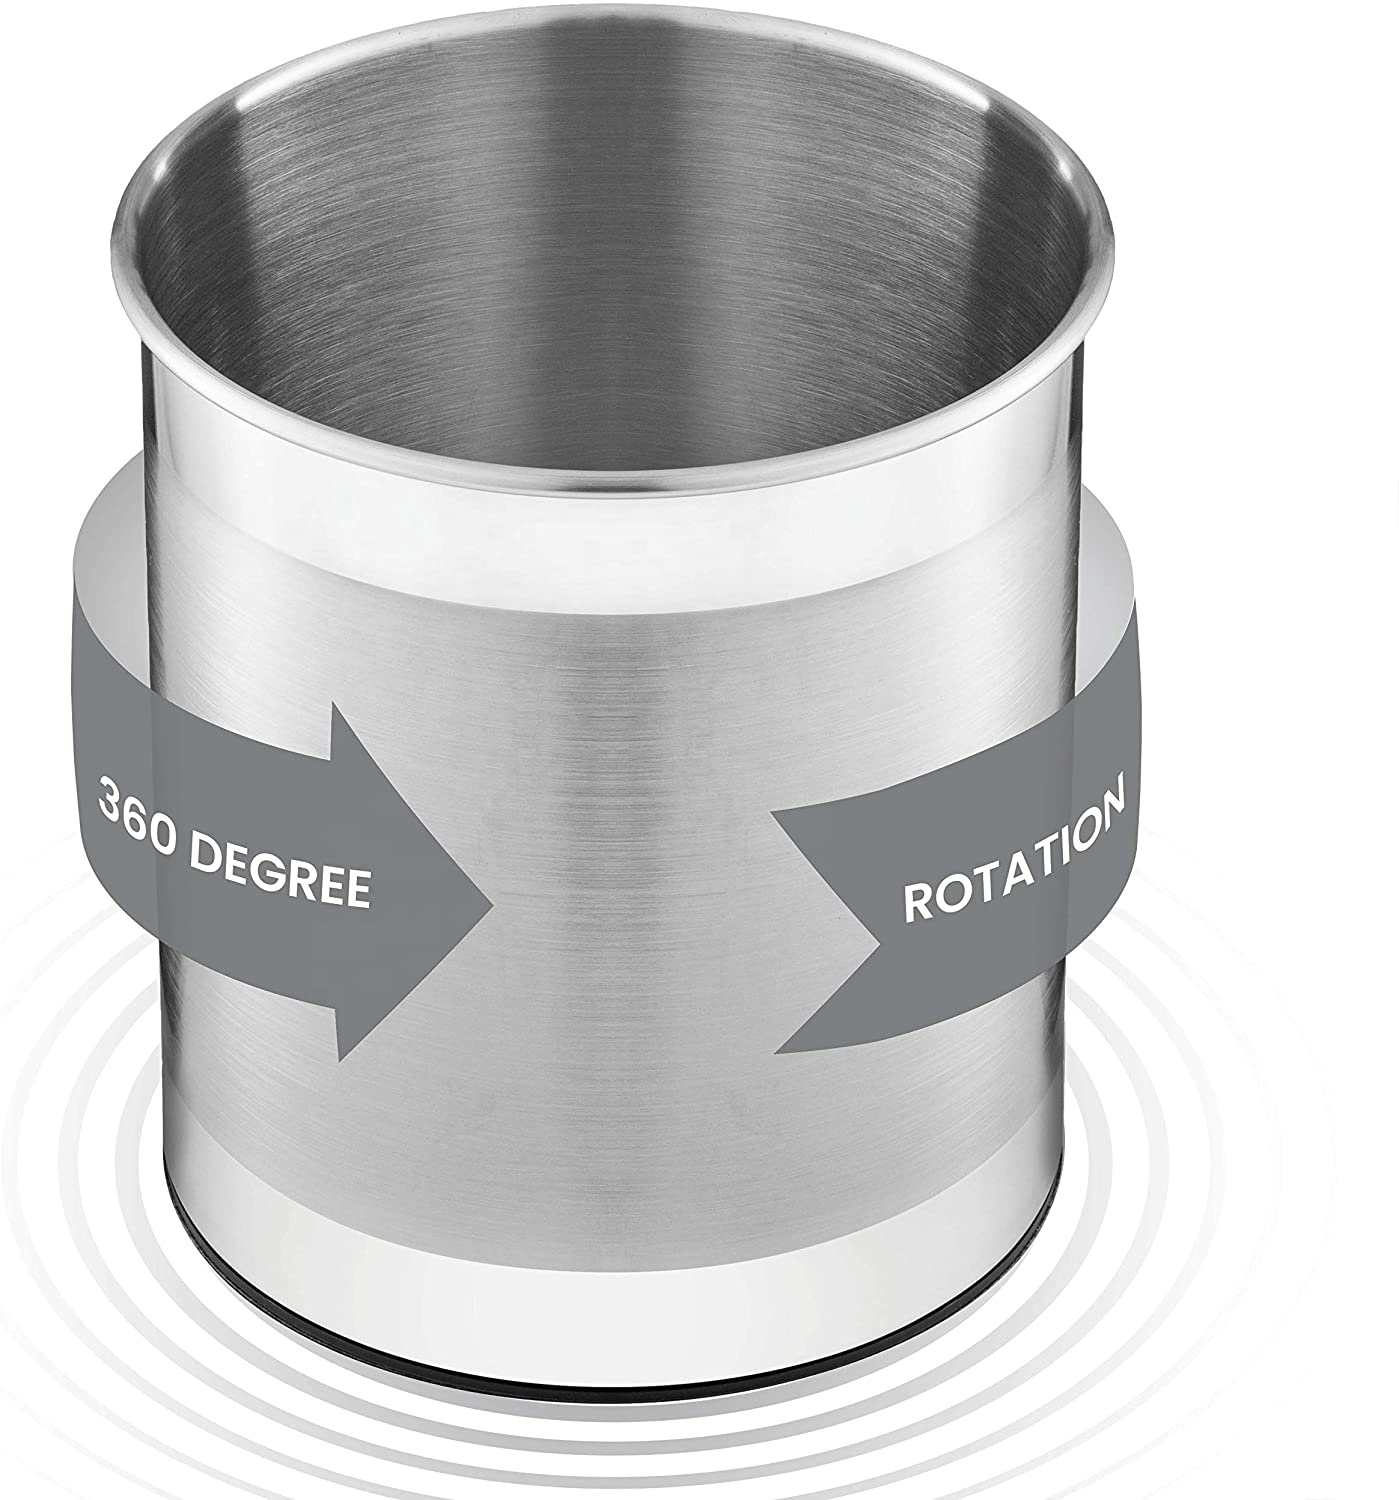 3 Compartments Removable Stainless Steel Rotating Knife Fork Bucket ,Kitchen Utensil Holder,Rotating Utensil caddy